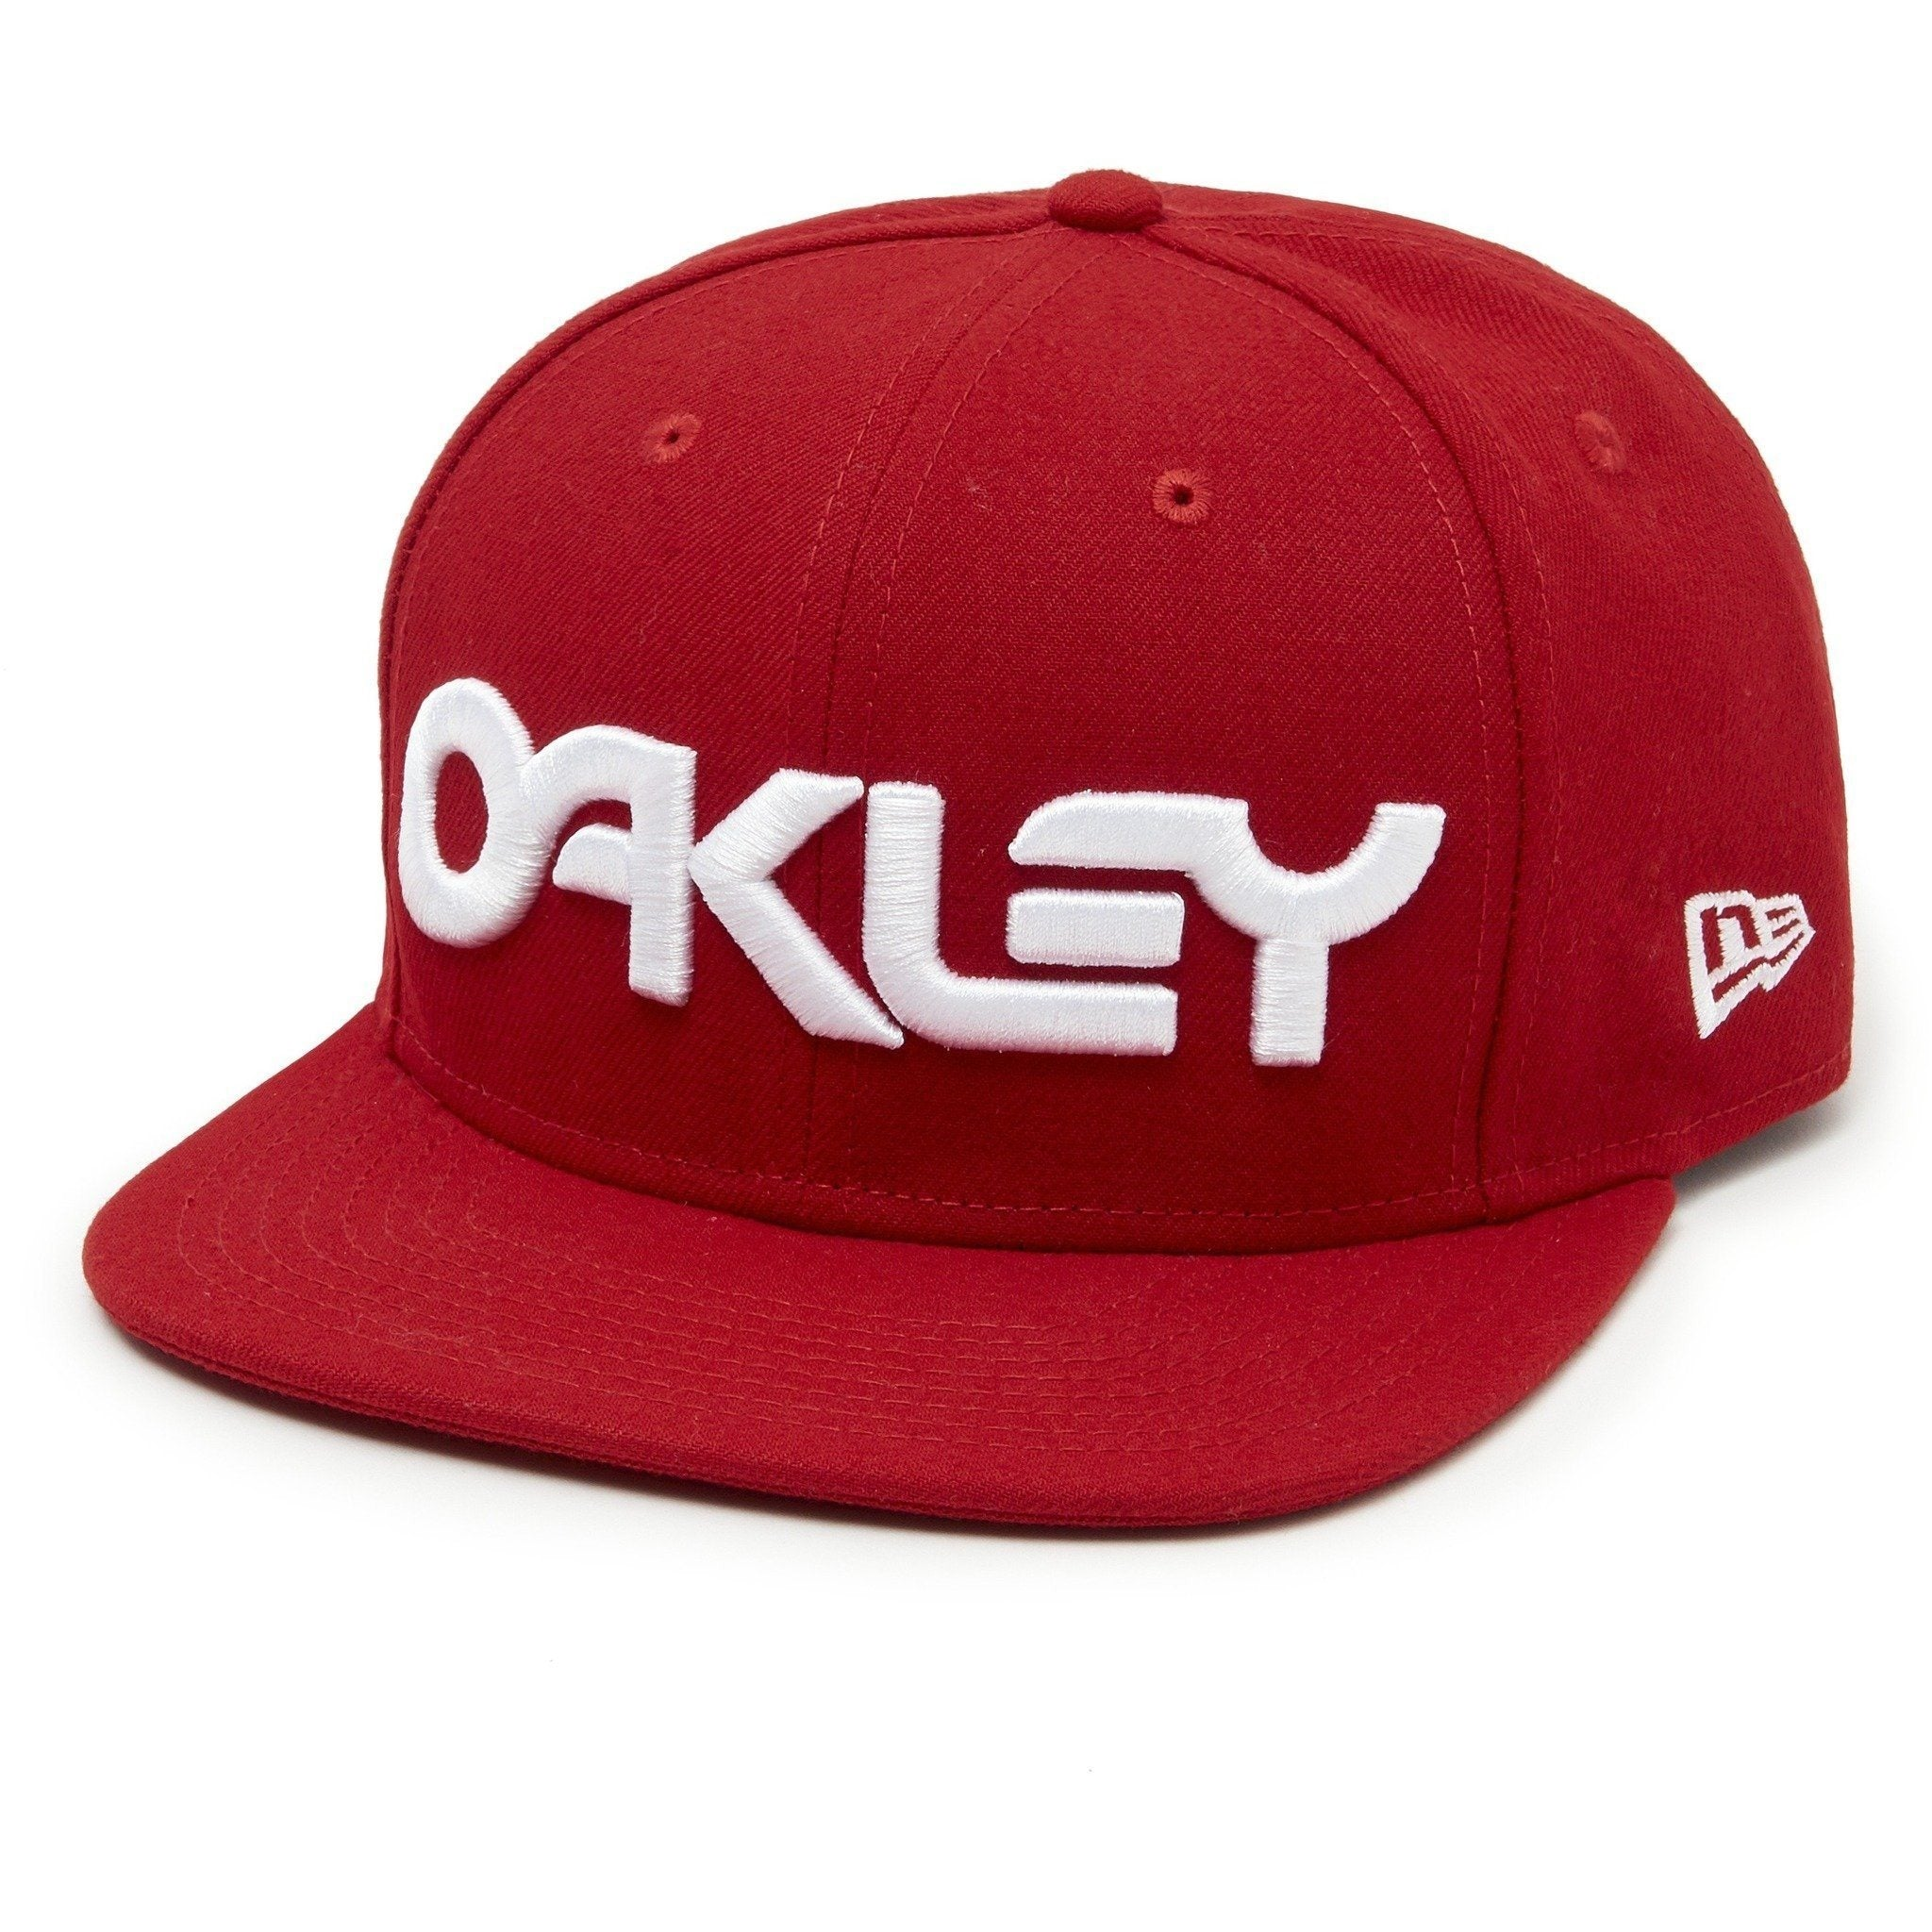 Oakley Mark 2 Snap Back Hat - 88 Gear